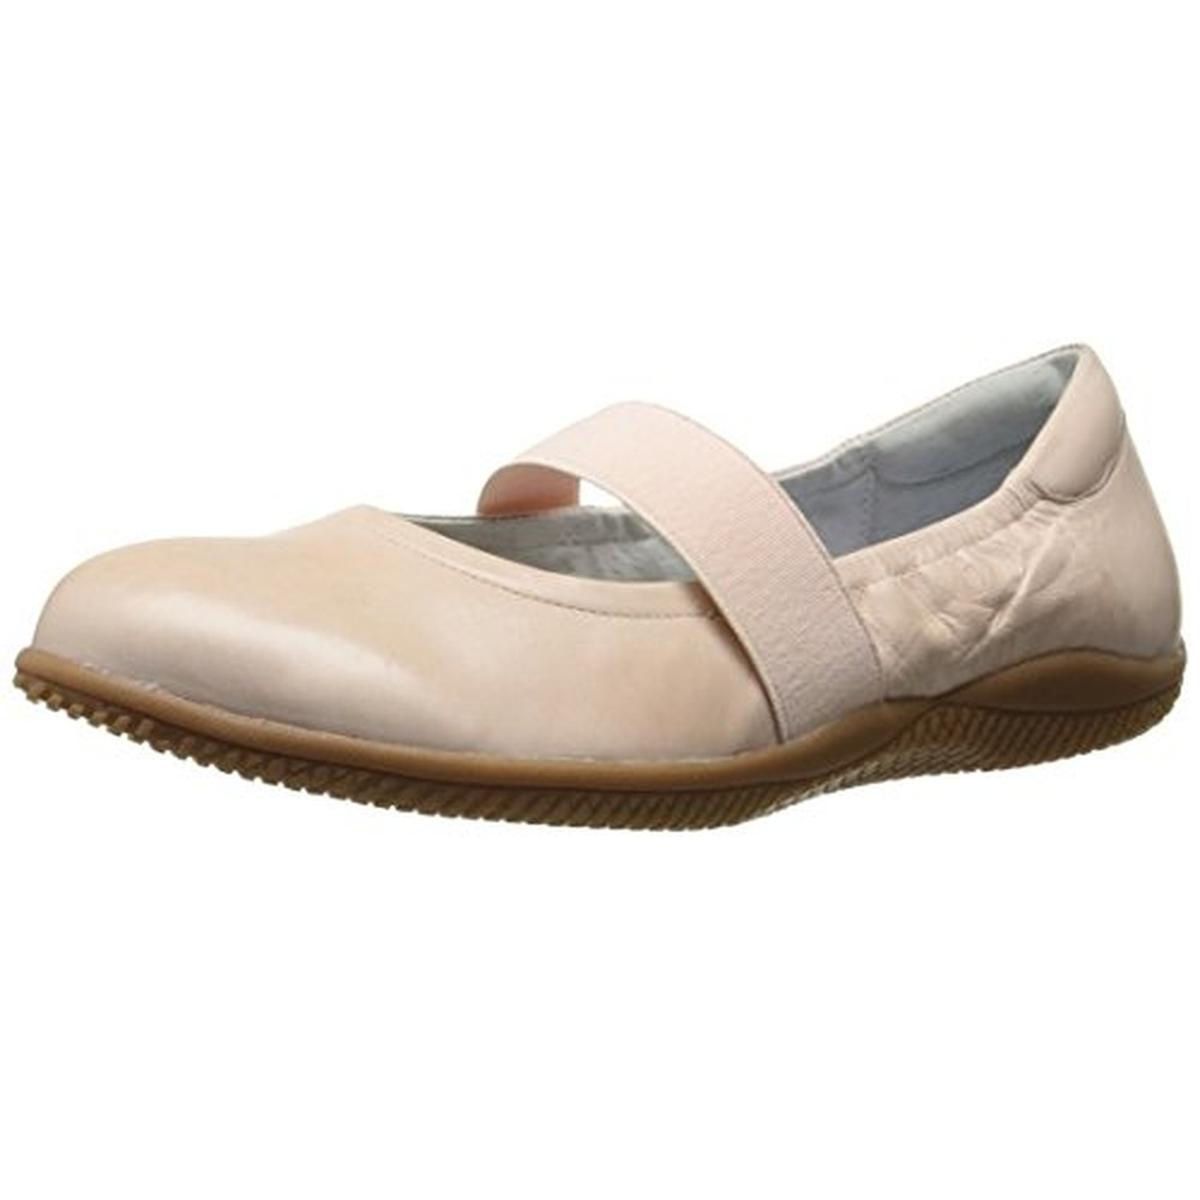 SoftWalk Womens High Point Comfort Insole Casual Mary Janes by SoftWalk